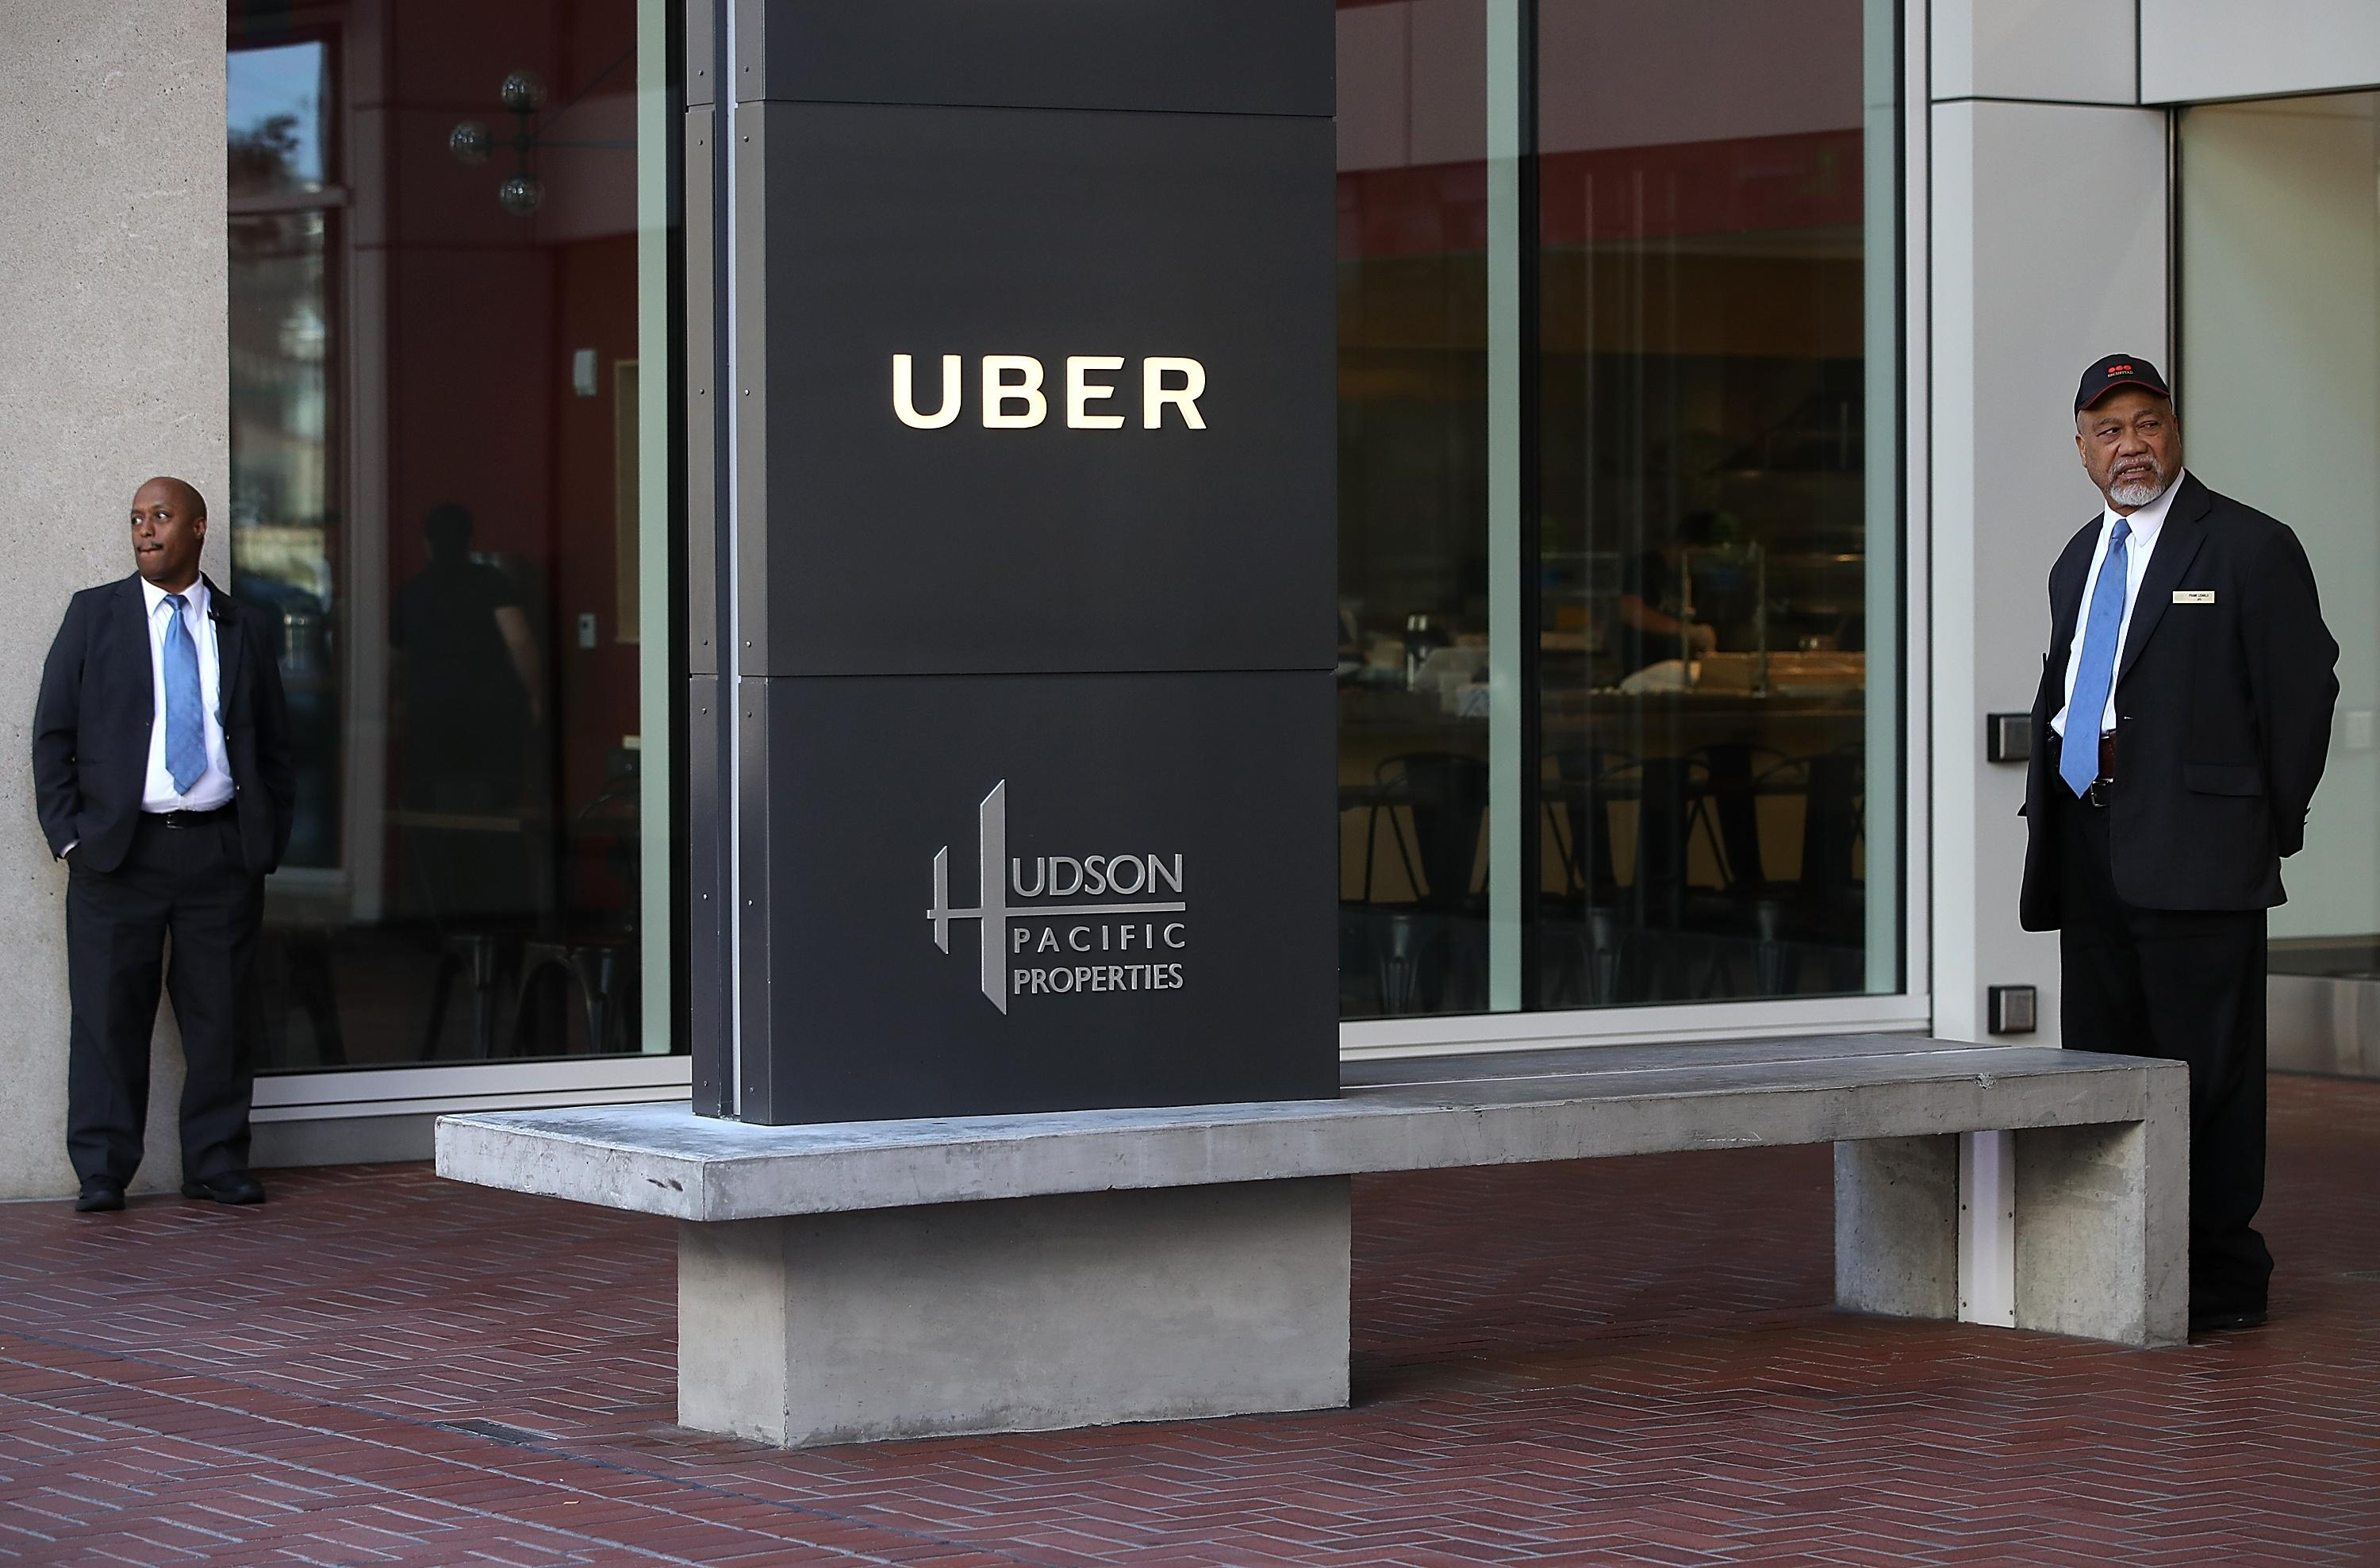 LEAKED AUDIO: Uber's all-hands meeting had some uncomfortable moments